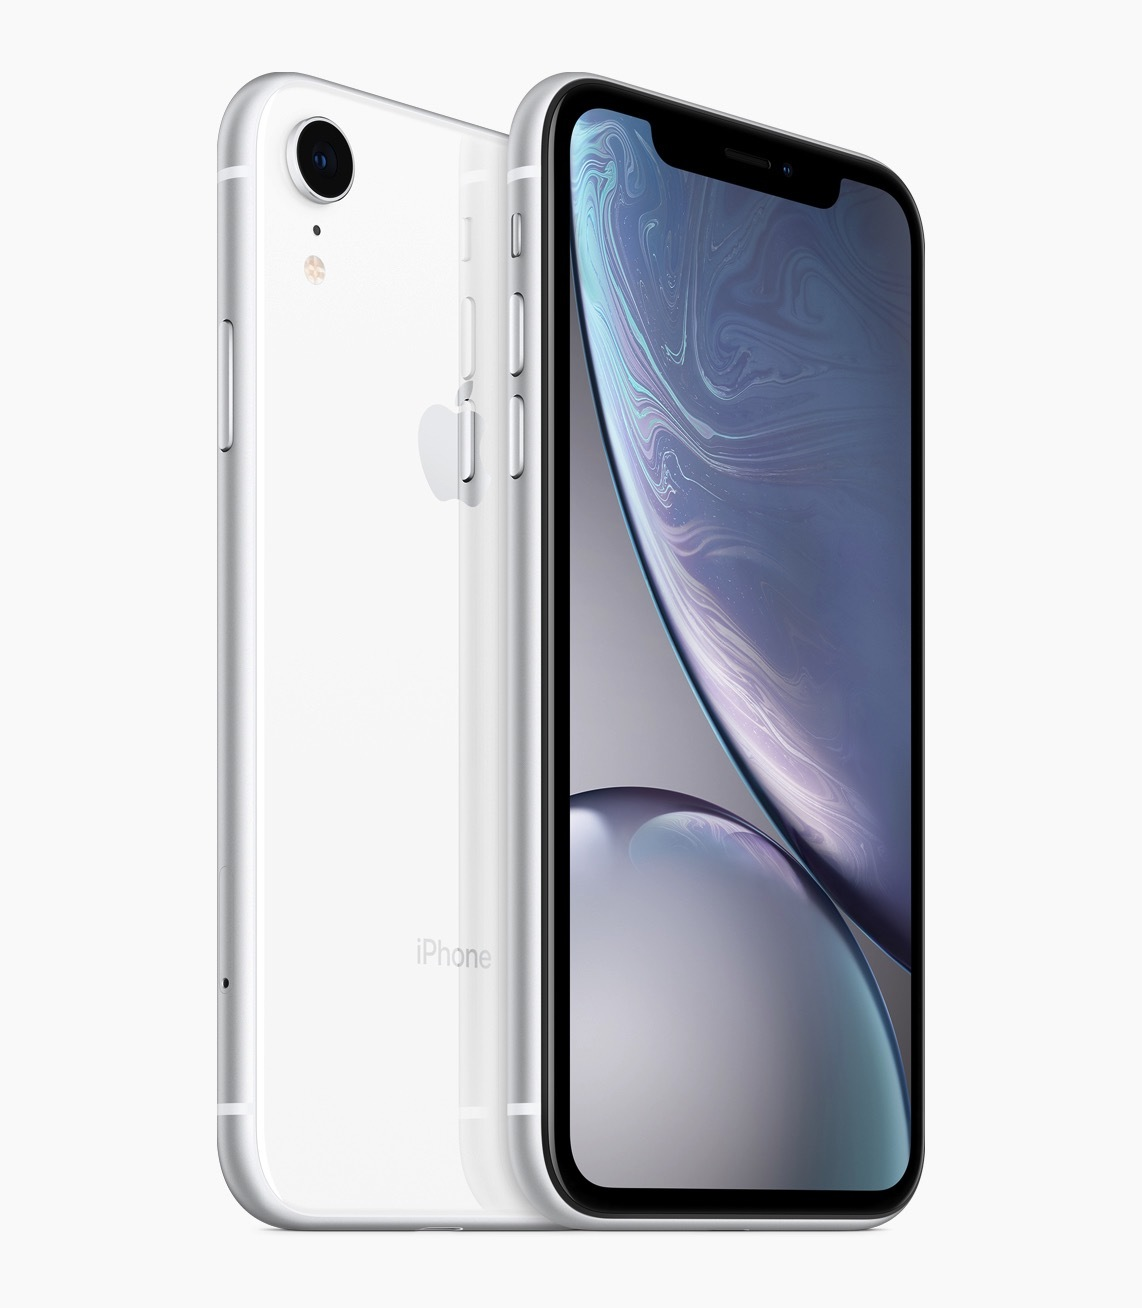 2018iphone-xr-white-back-09122018jt-1